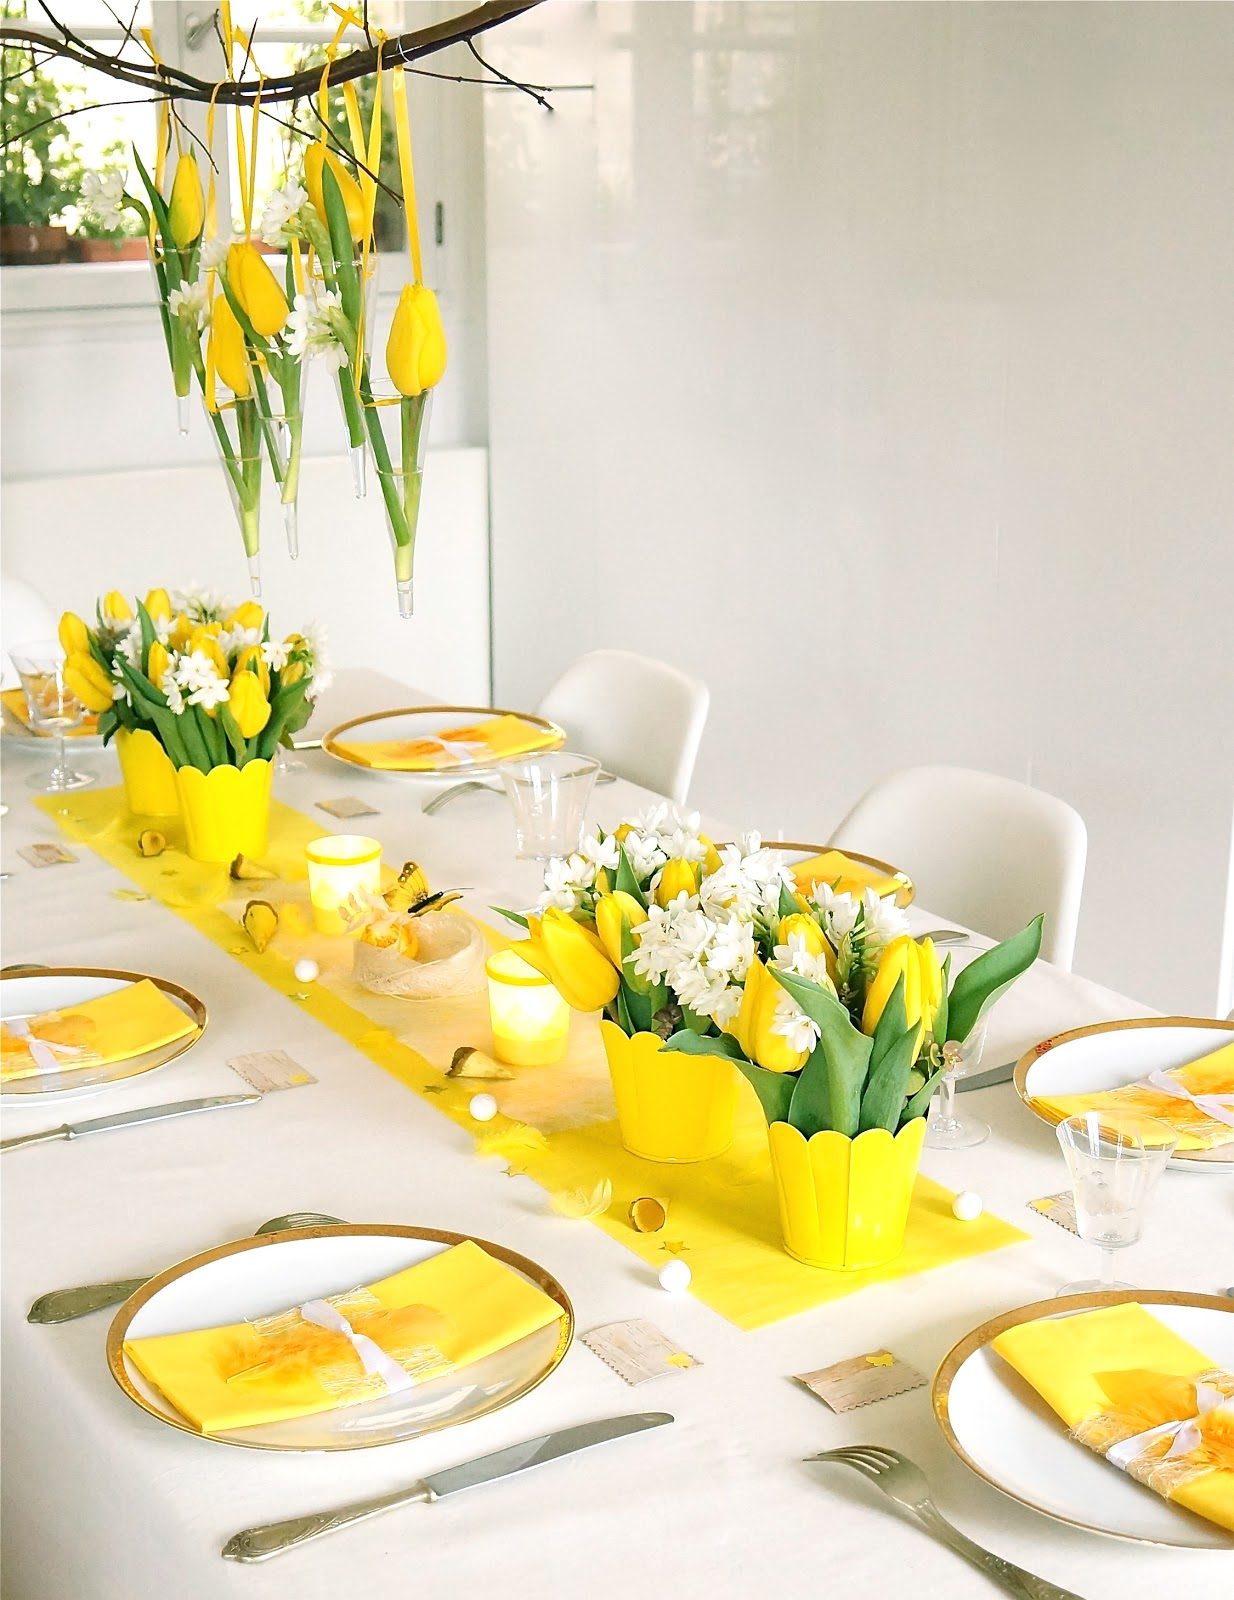 ma boutique d co table d coration de table jaune printemps une table qui r veille les papilles